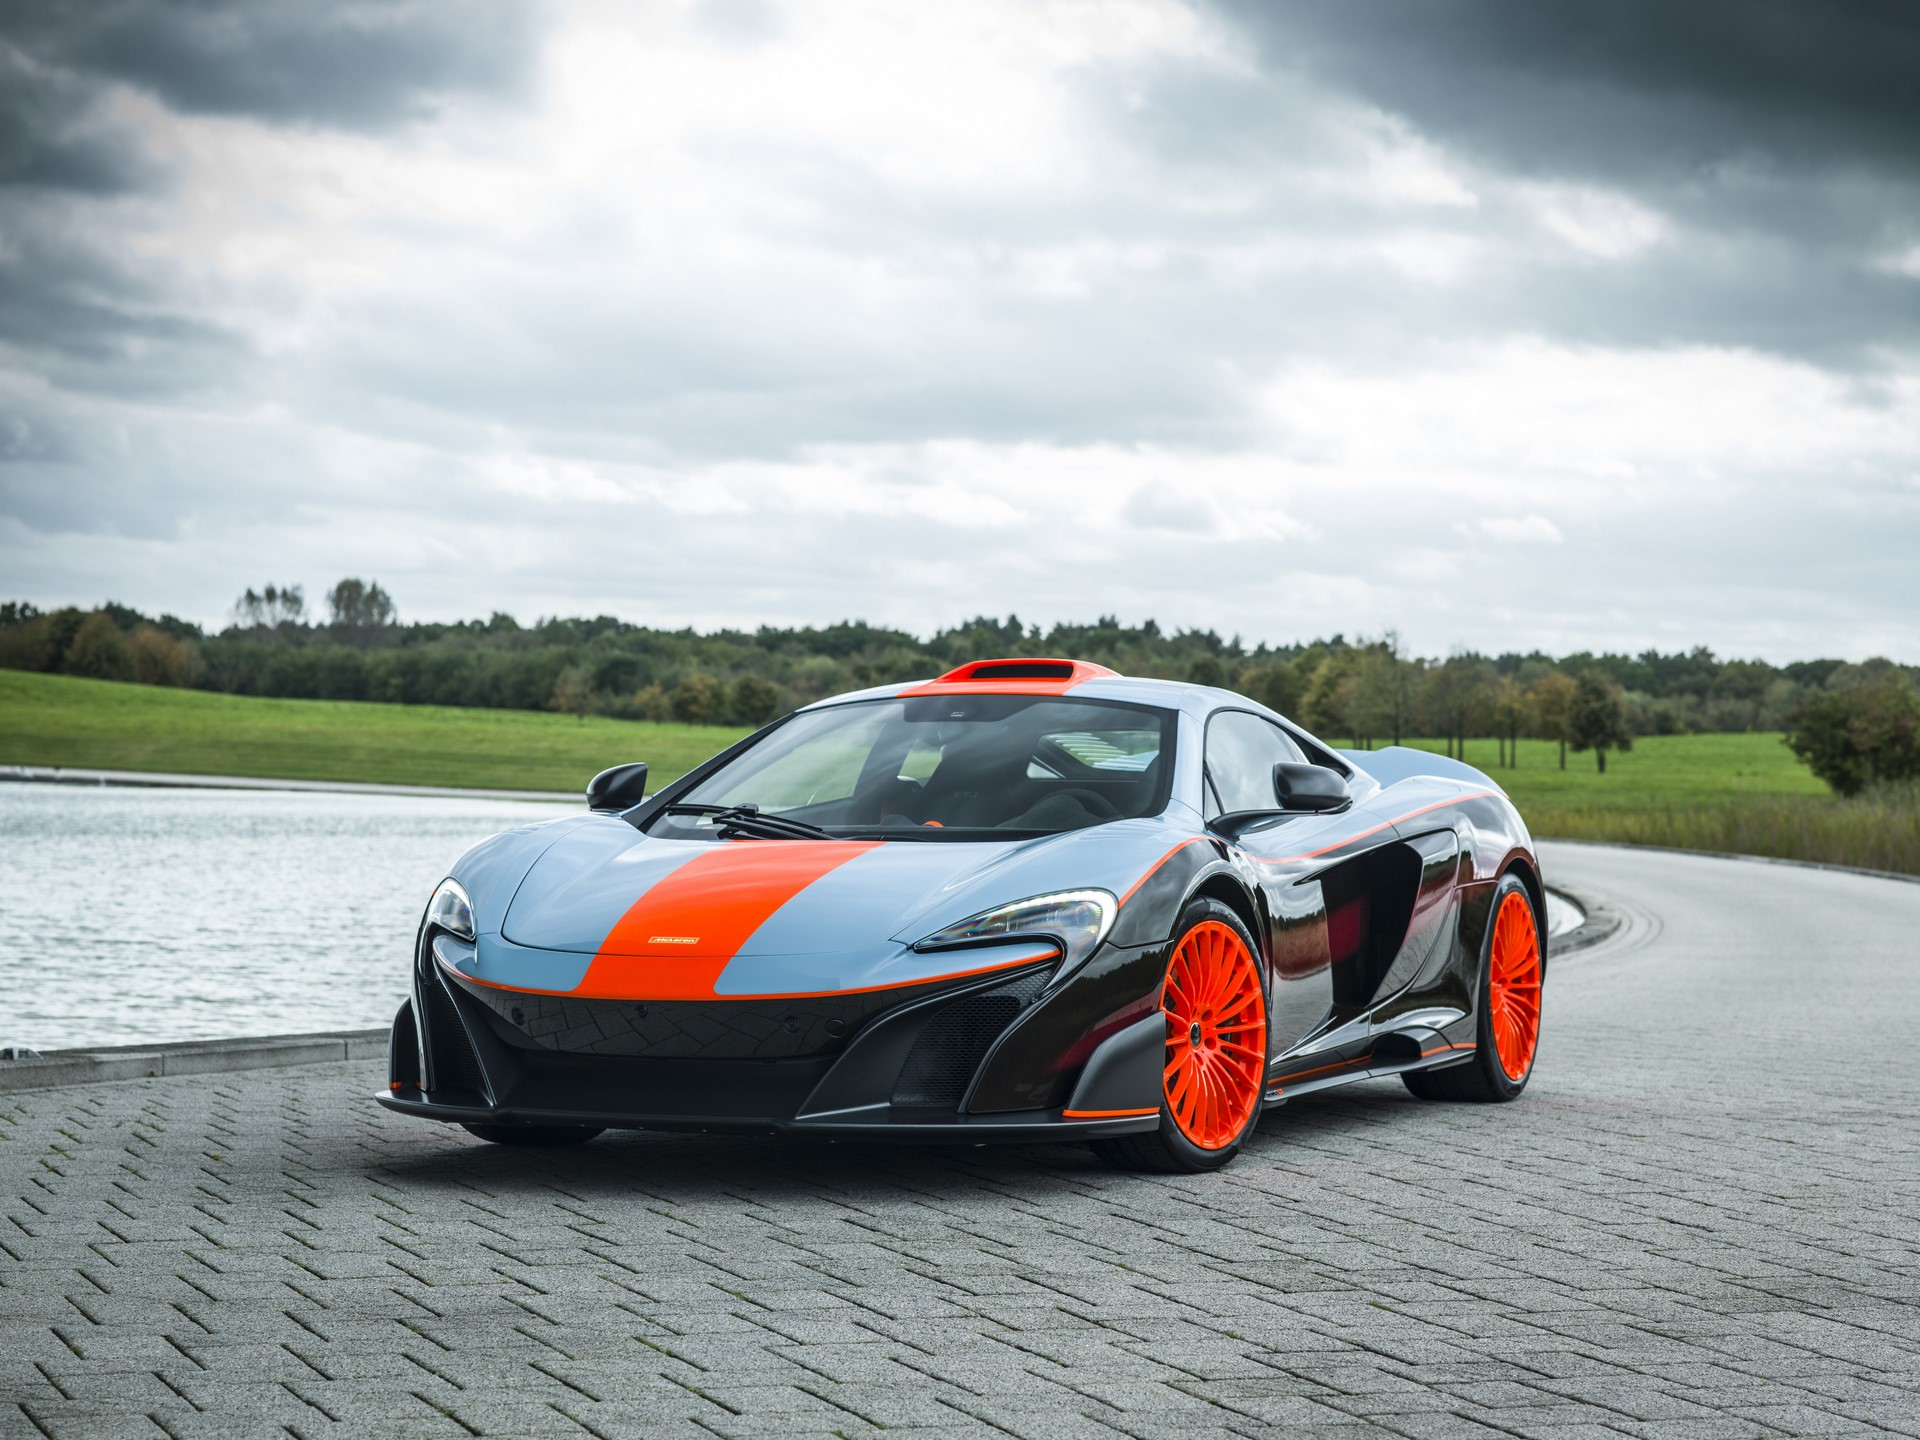 MSO Gulf Racing theme McLaren 675LT_01_exterior resized_GF Williams